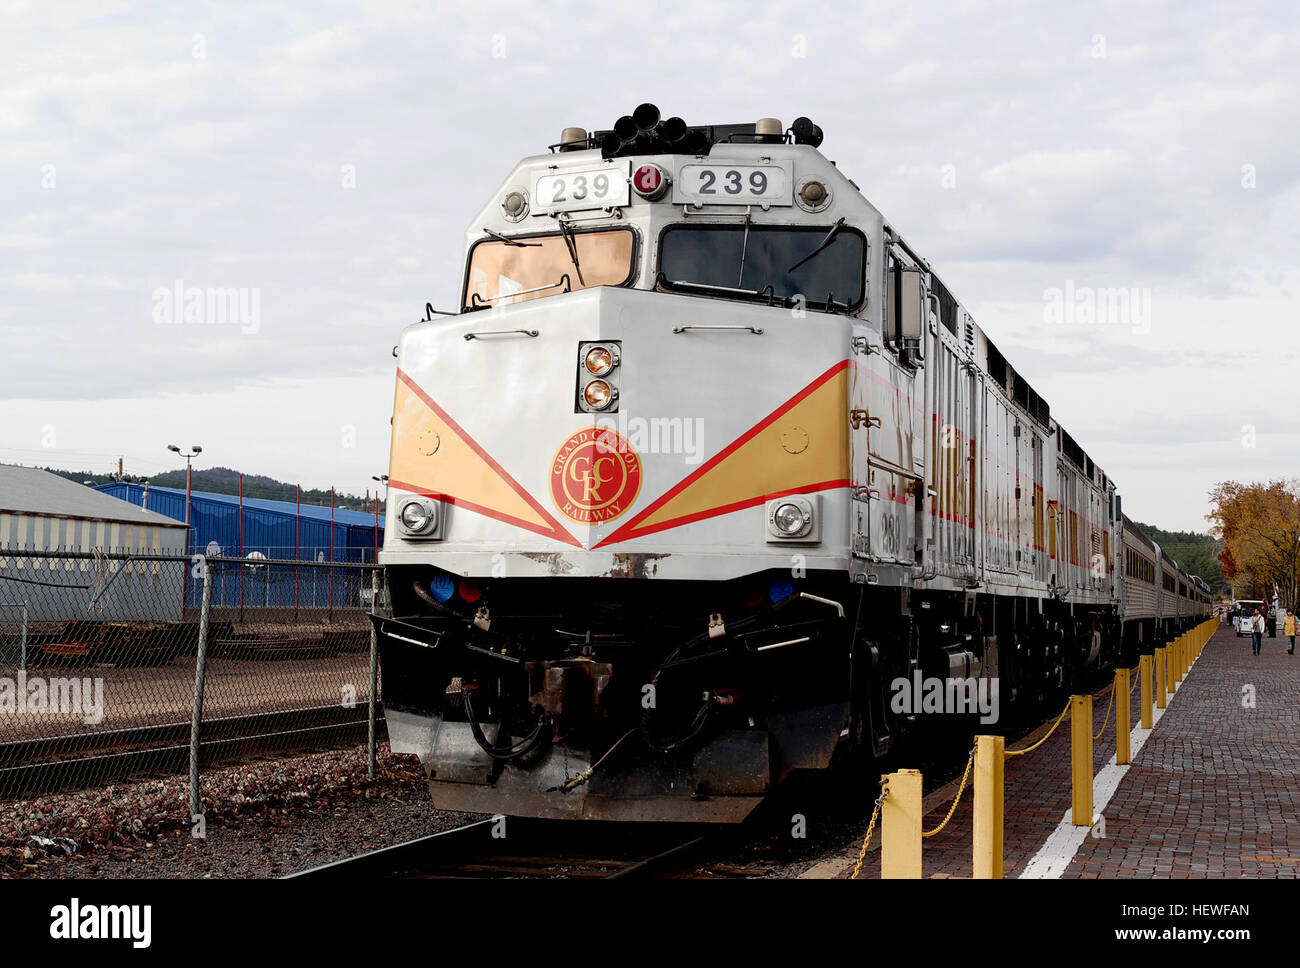 Hundreds of F40PH units were built, and many can be found in use on passenger, tourist and freight railroads today, - Stock Image